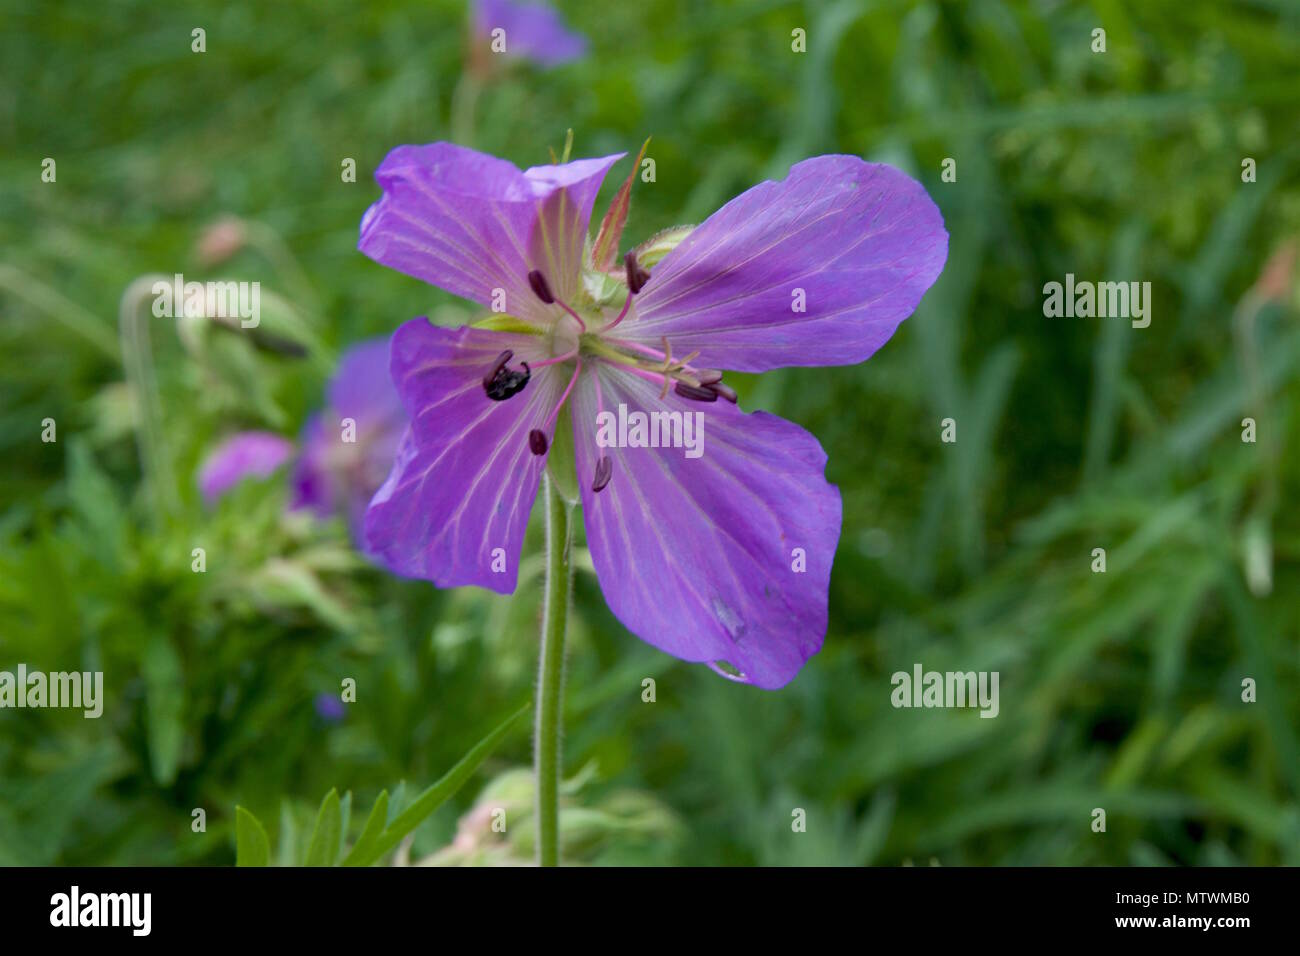 Geranium pratense, also known as meadow cranesbill or meadow geranium, is a species of flowering plant in the family Geraniaceae - Stock Image